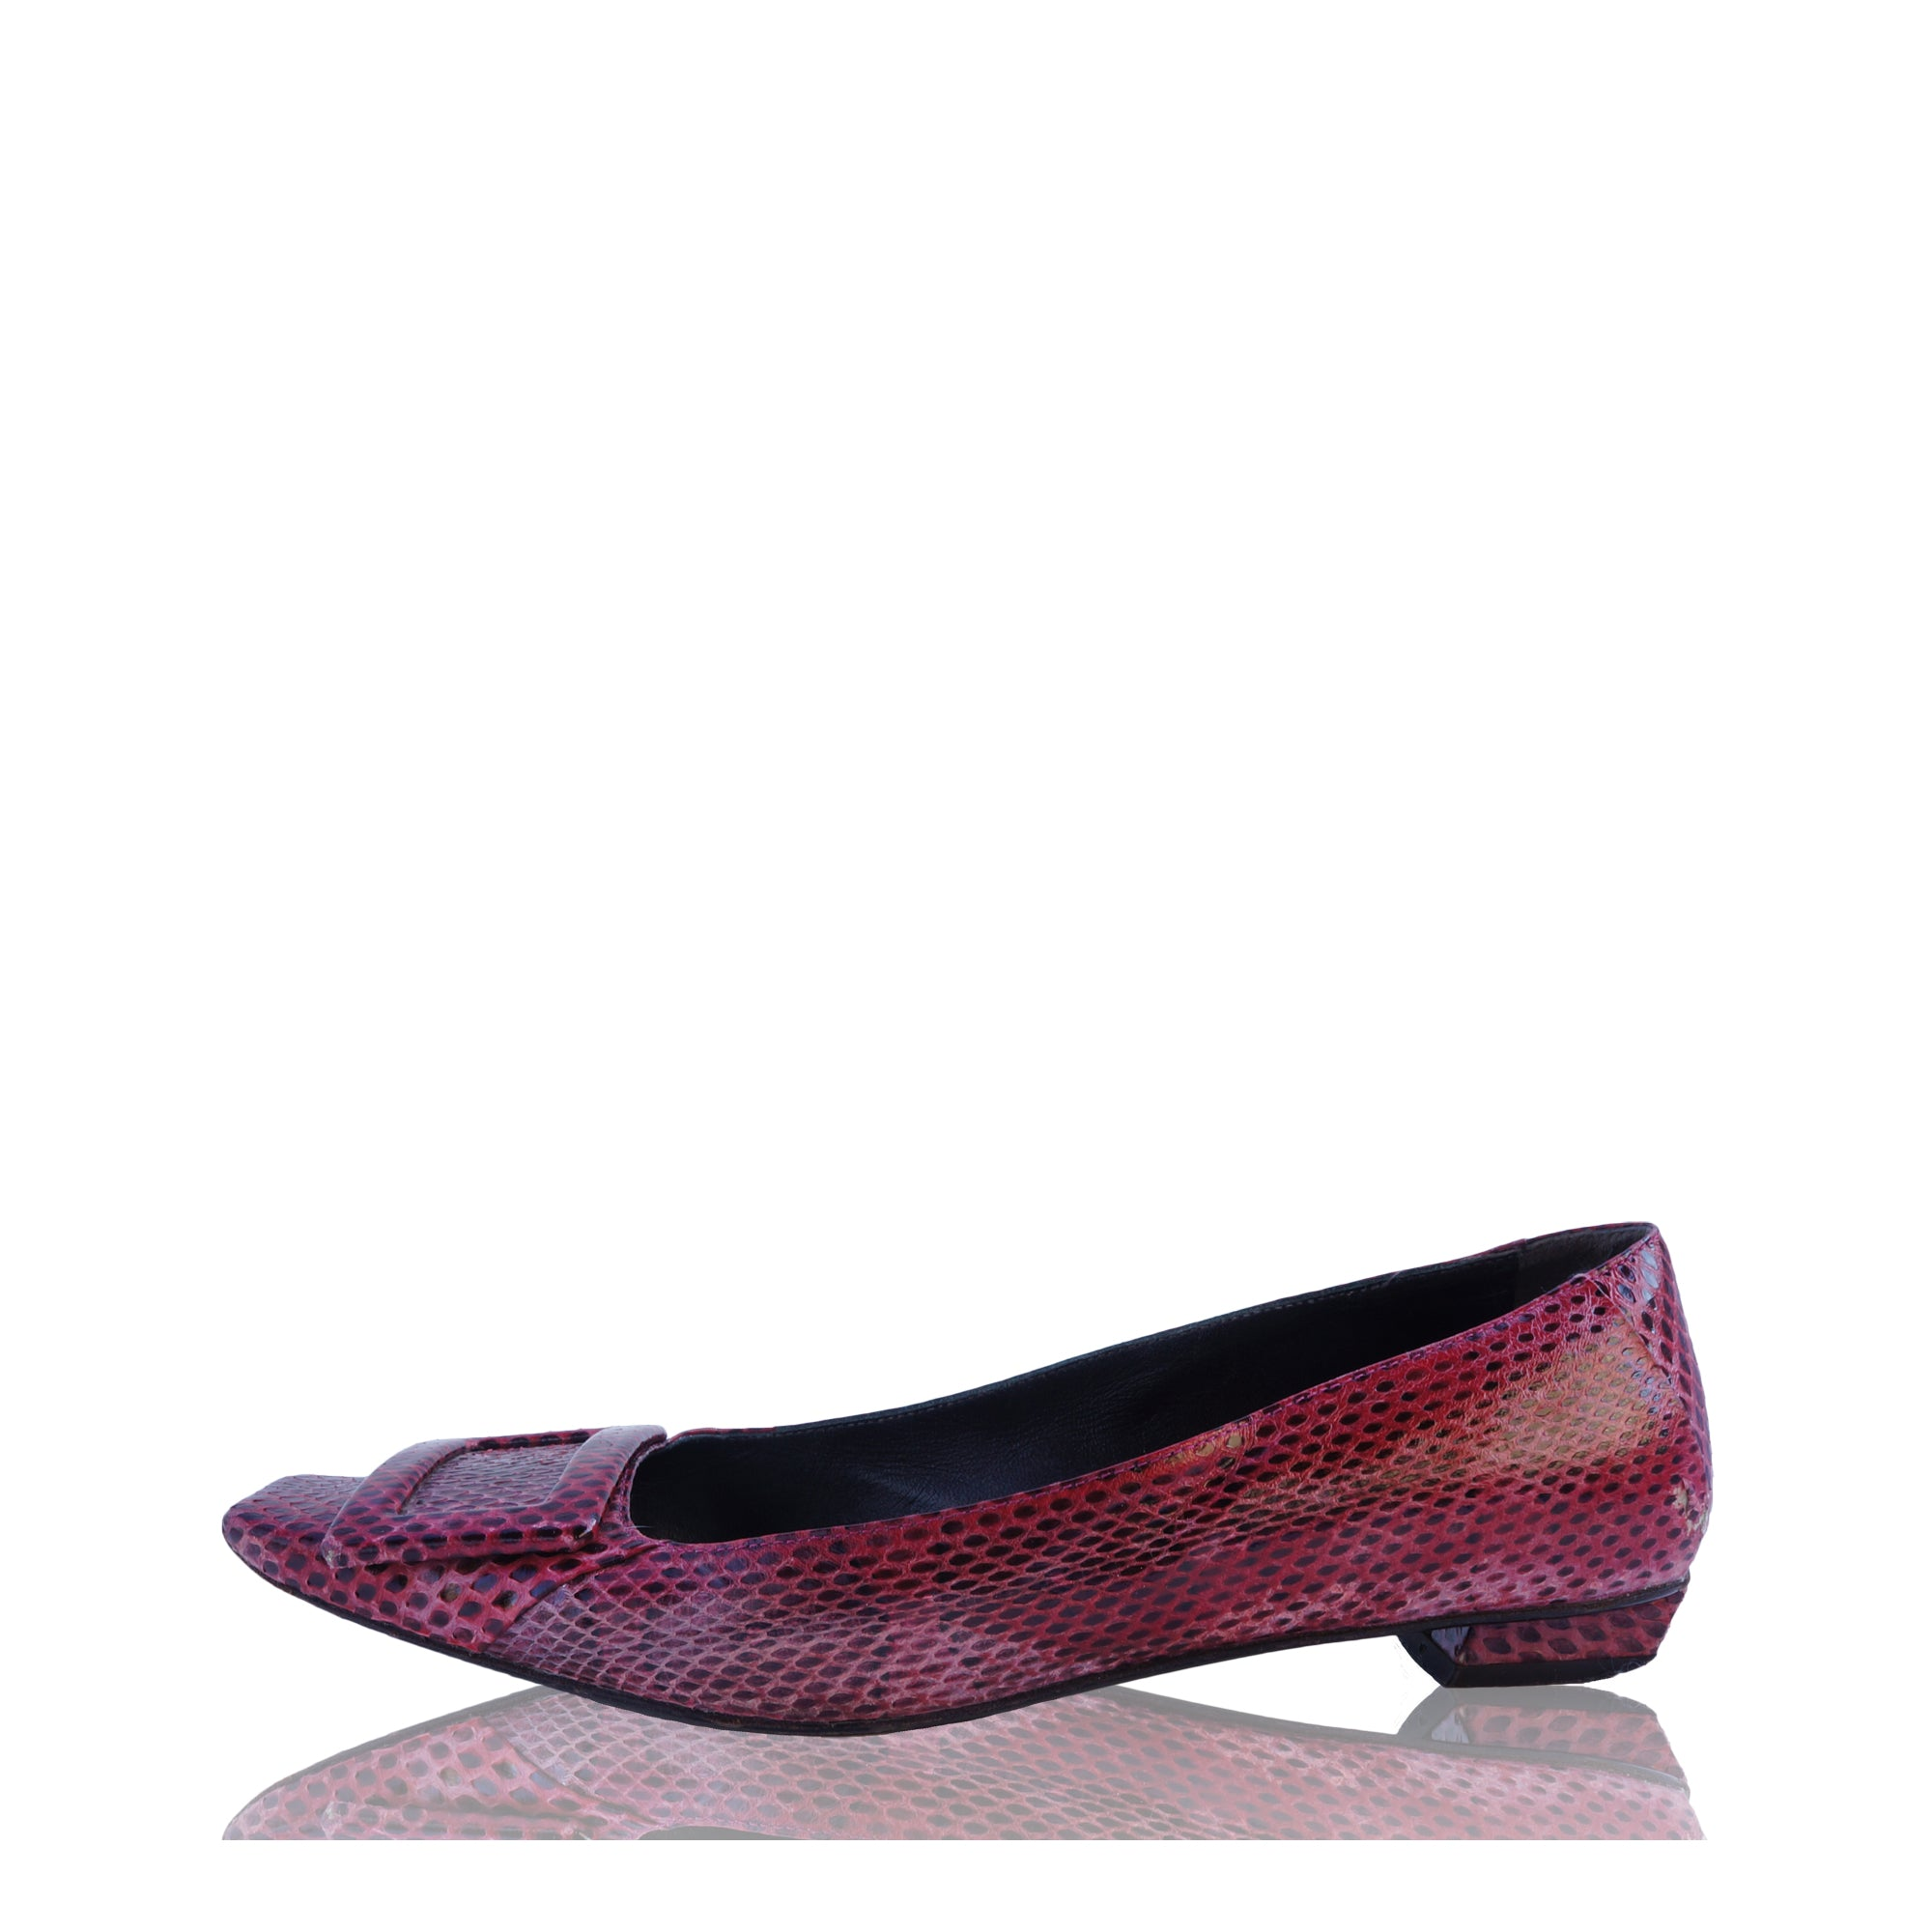 b4c13d9a7000 ROGER VIVIER SNAKESKIN BUCKLE FLATS Shop online the best value on authentic  designer used preowned consignment ...